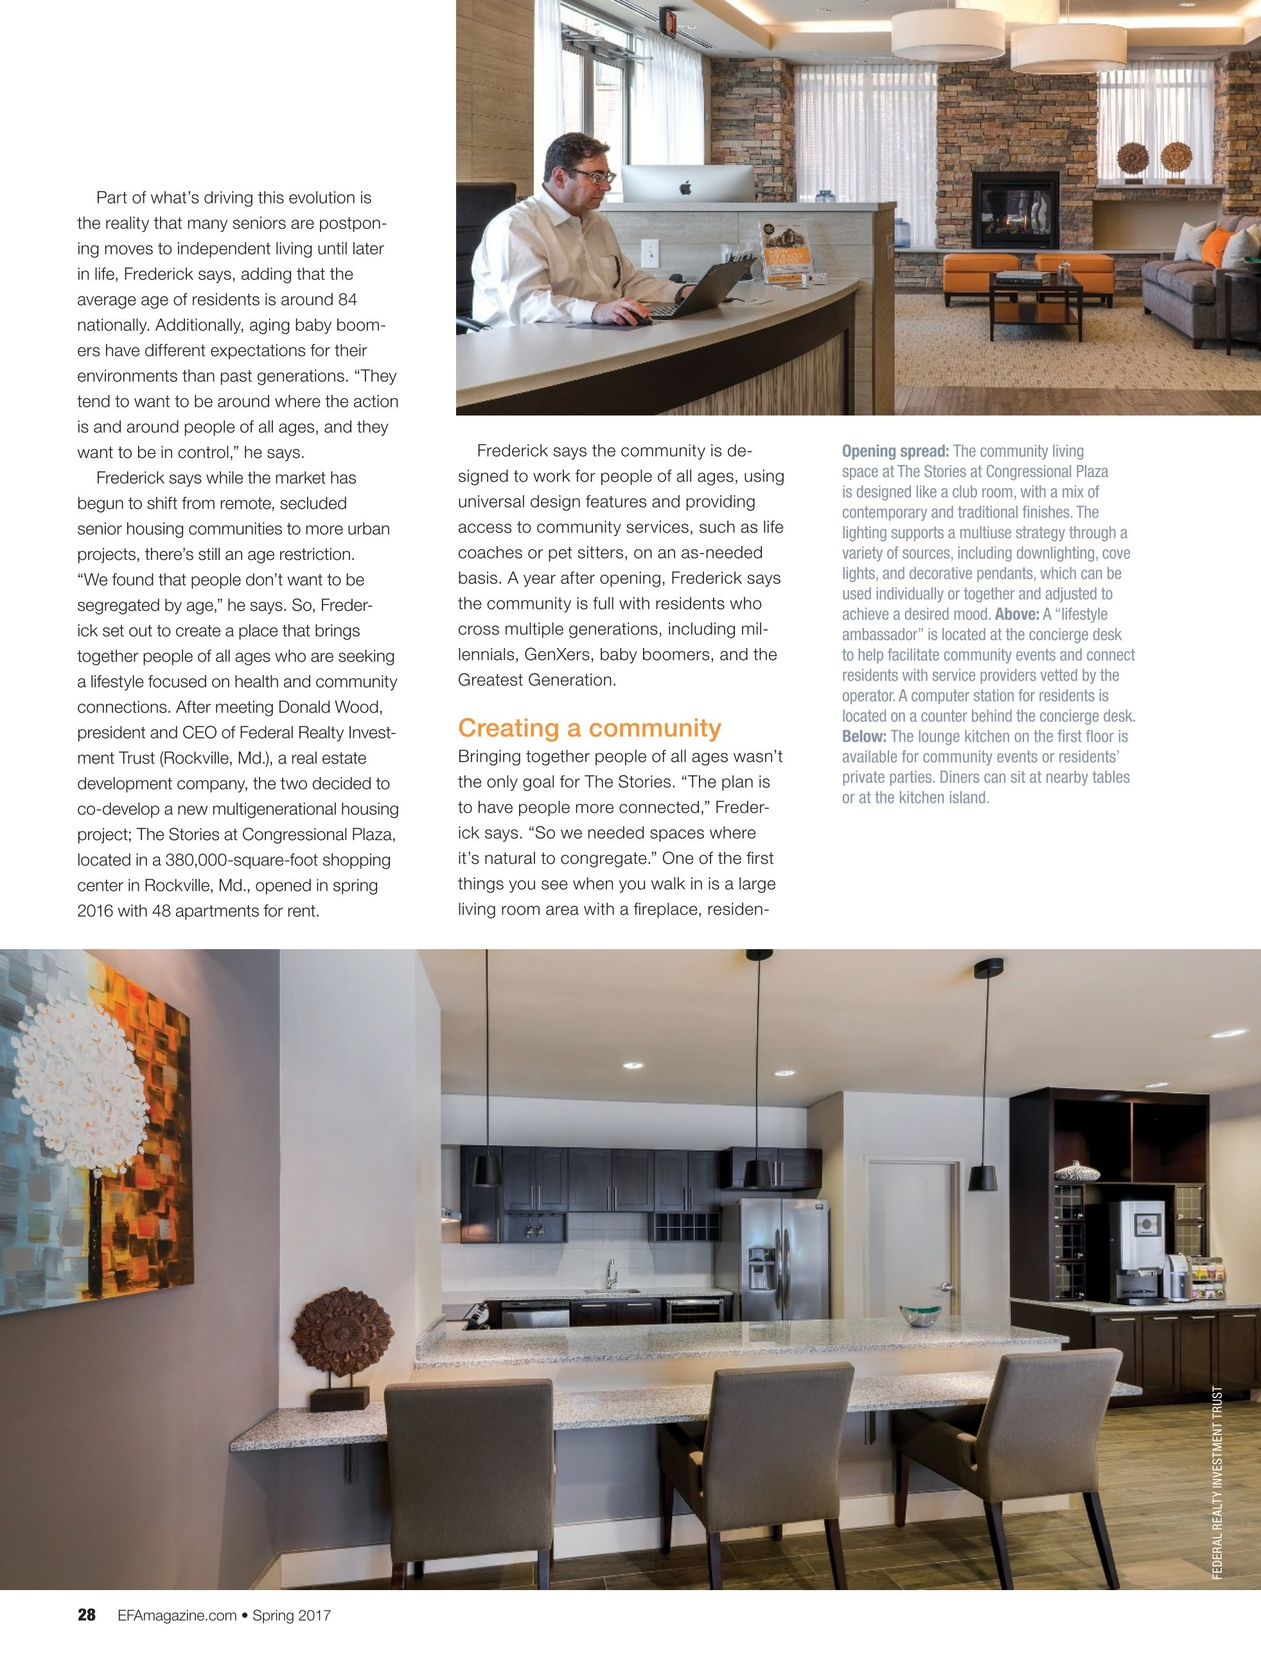 Environments for Aging - Spring 2017 on older house design, neutral house design, color house design, movie house design, food house design, conventional house design, girly house design, local house design, whole house design, gold house design, colorful house design, shell house design, natural art, natural home, historical house design, oil house design, economic house design, strawbale house design,